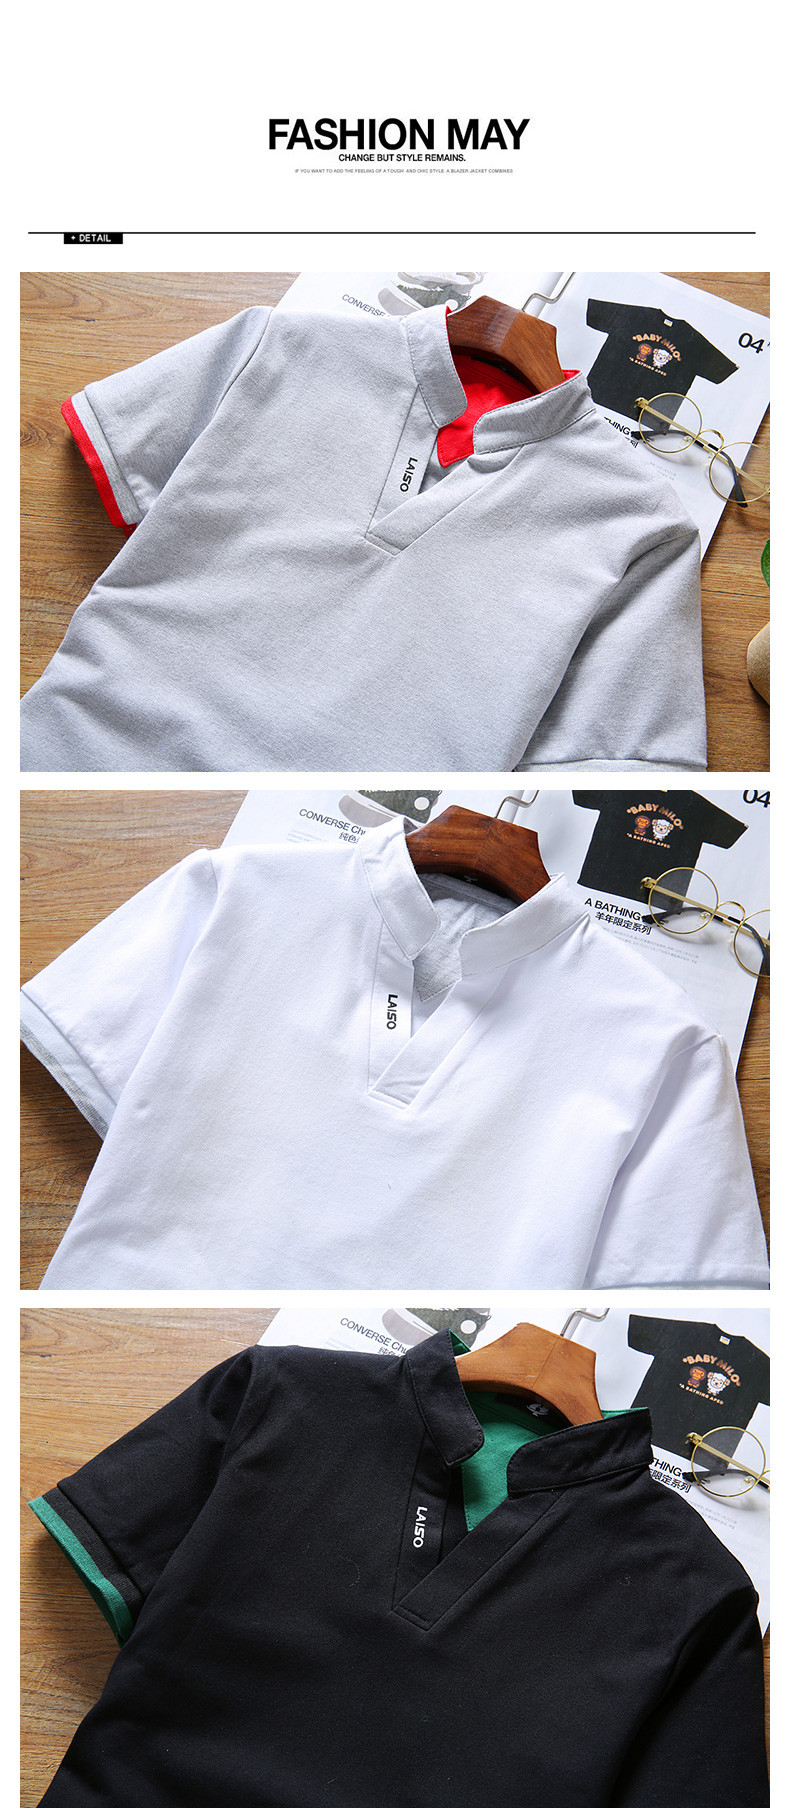 Cotton Men Polo Shirt Tops Fashion Brand Plus Size Short Sleeve Black White Polo Shirt Homme Camisa 37